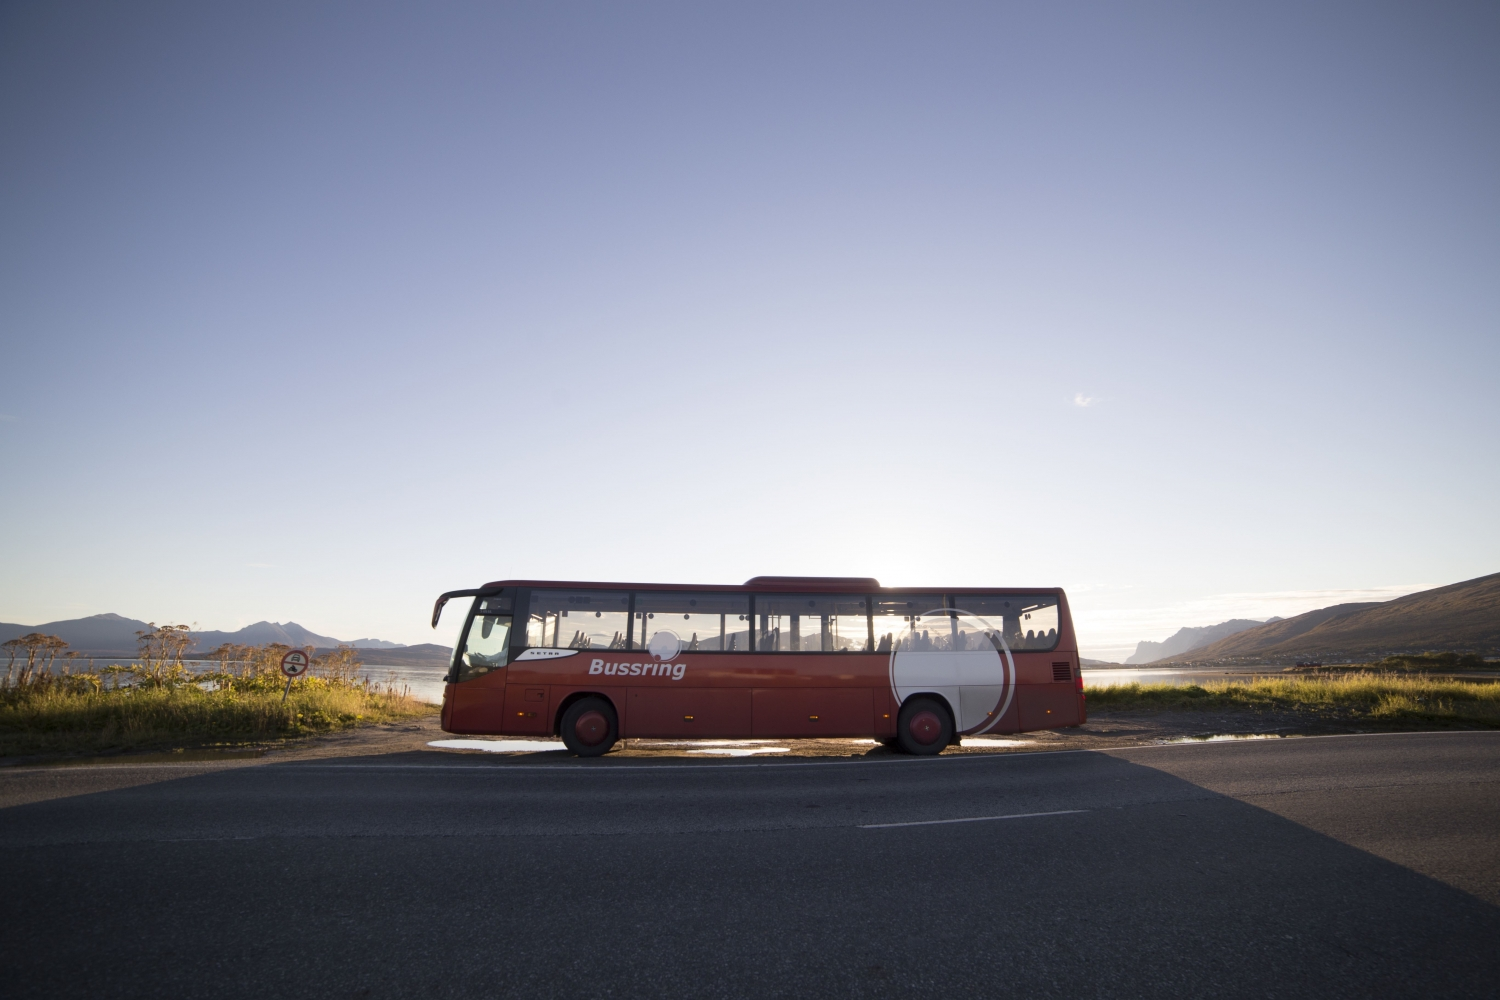 One of Bussrings buses in sunset